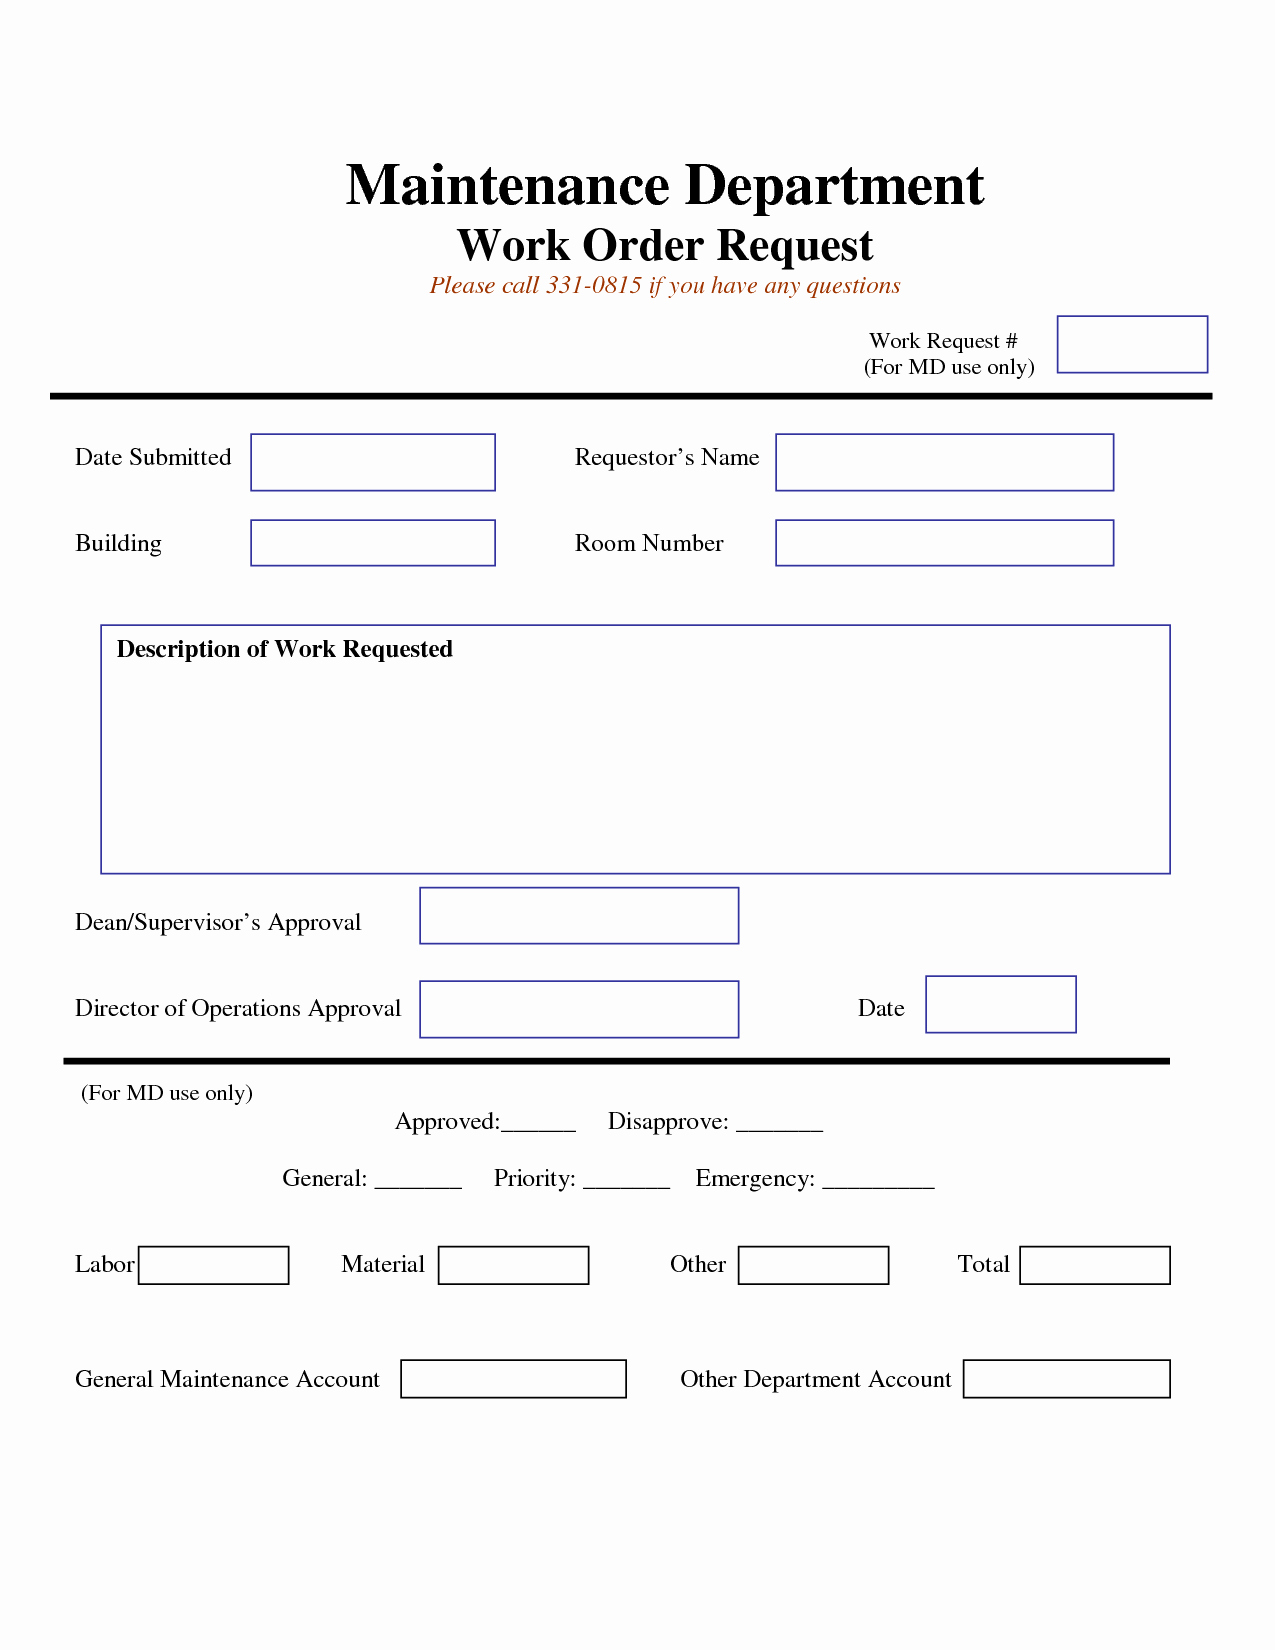 Maintenance Work order Template Excel Fresh Work Request form